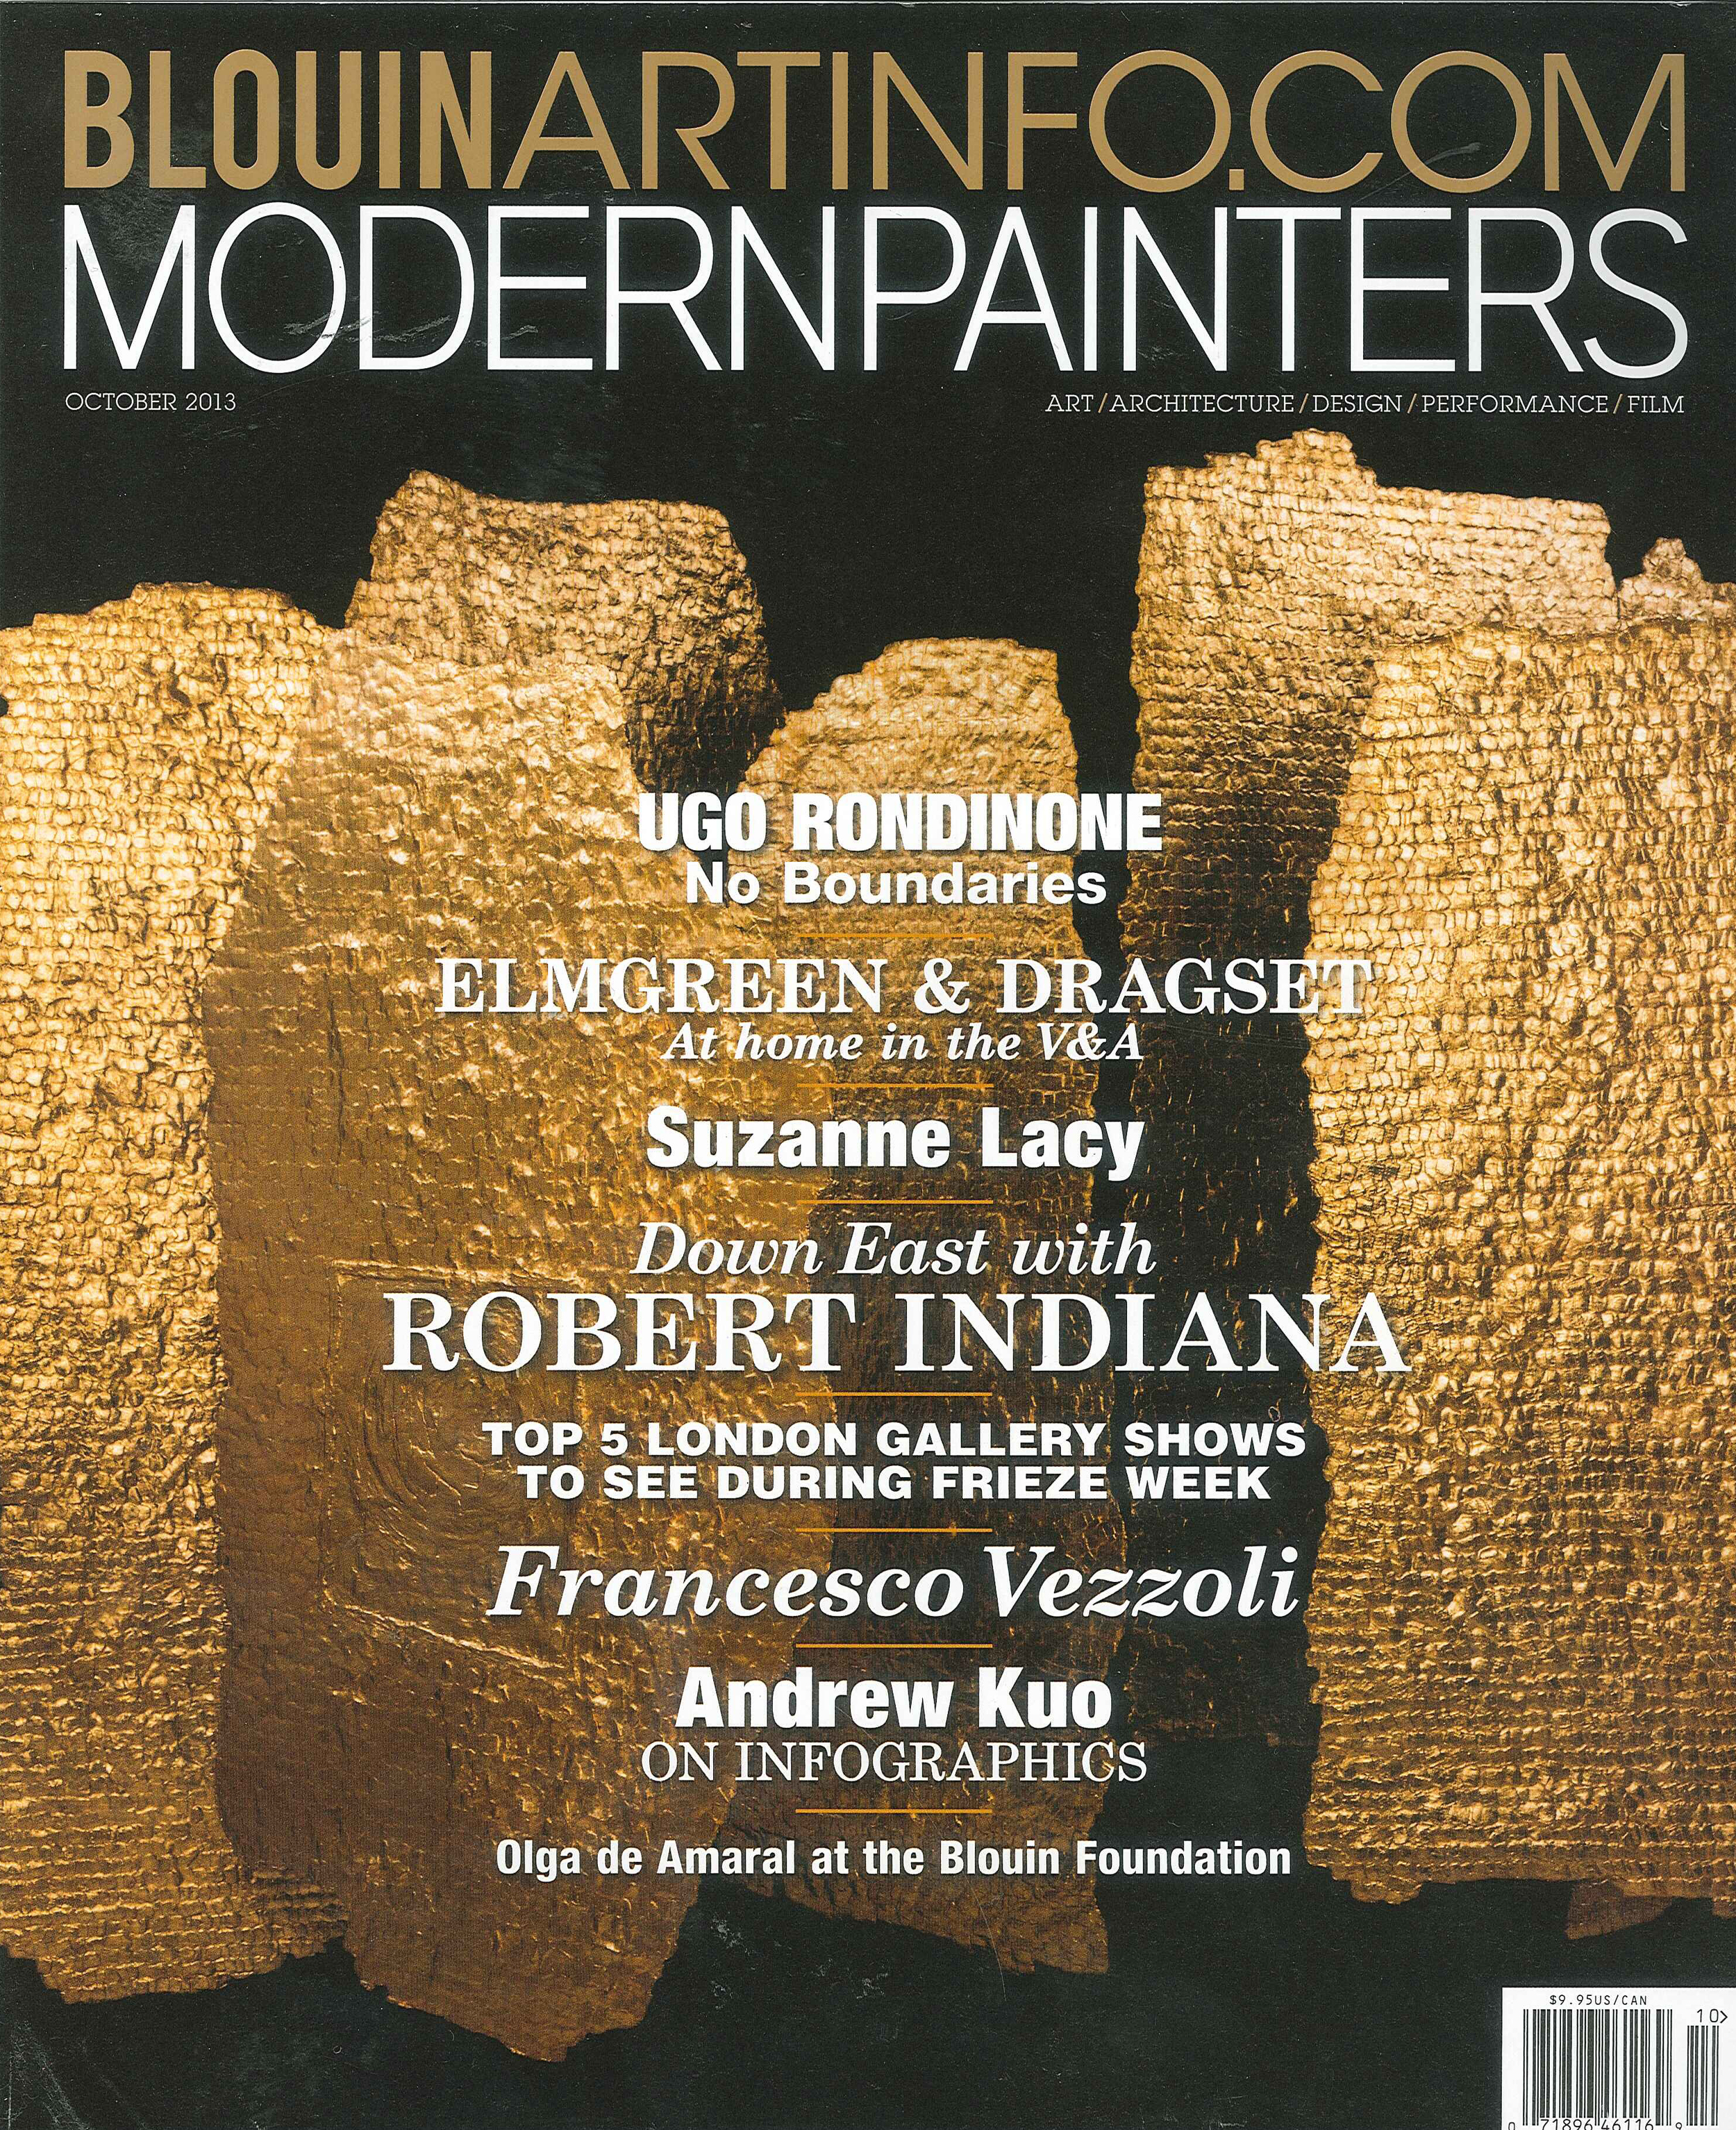 ModernPainters_Oct2013_Cover.jpg